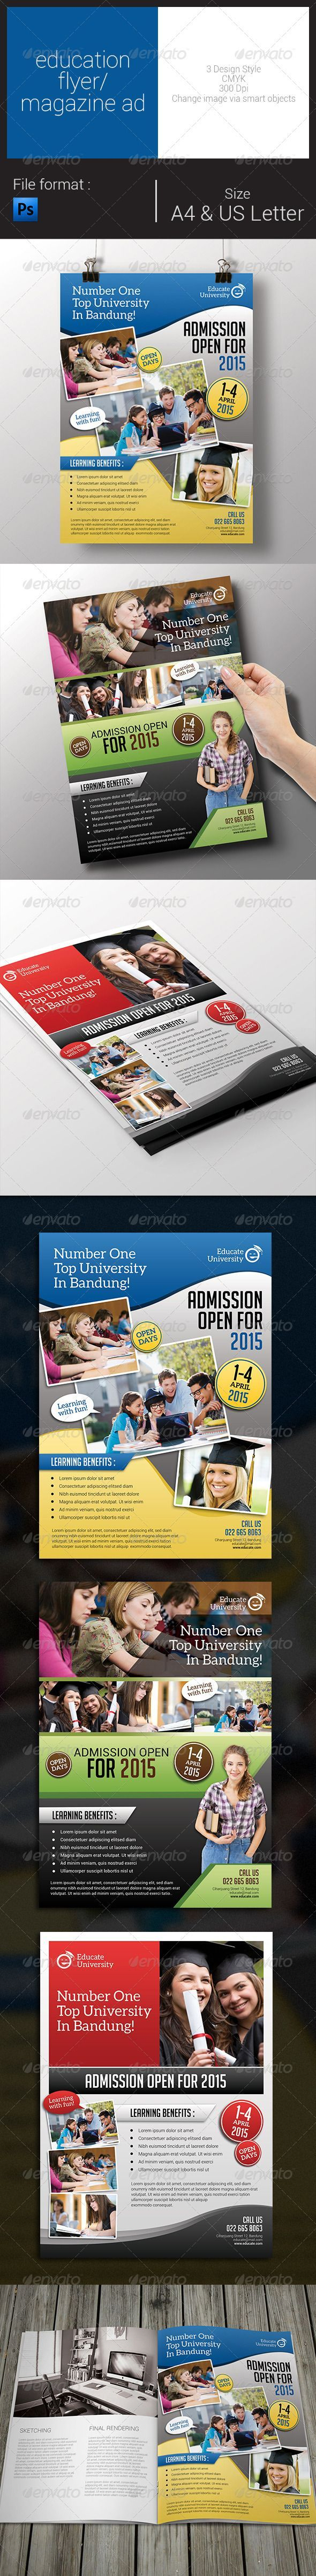 Education Flyer / Magazine Ad — Photoshop PSD ad • Available here → graphicriver.net/ Source link